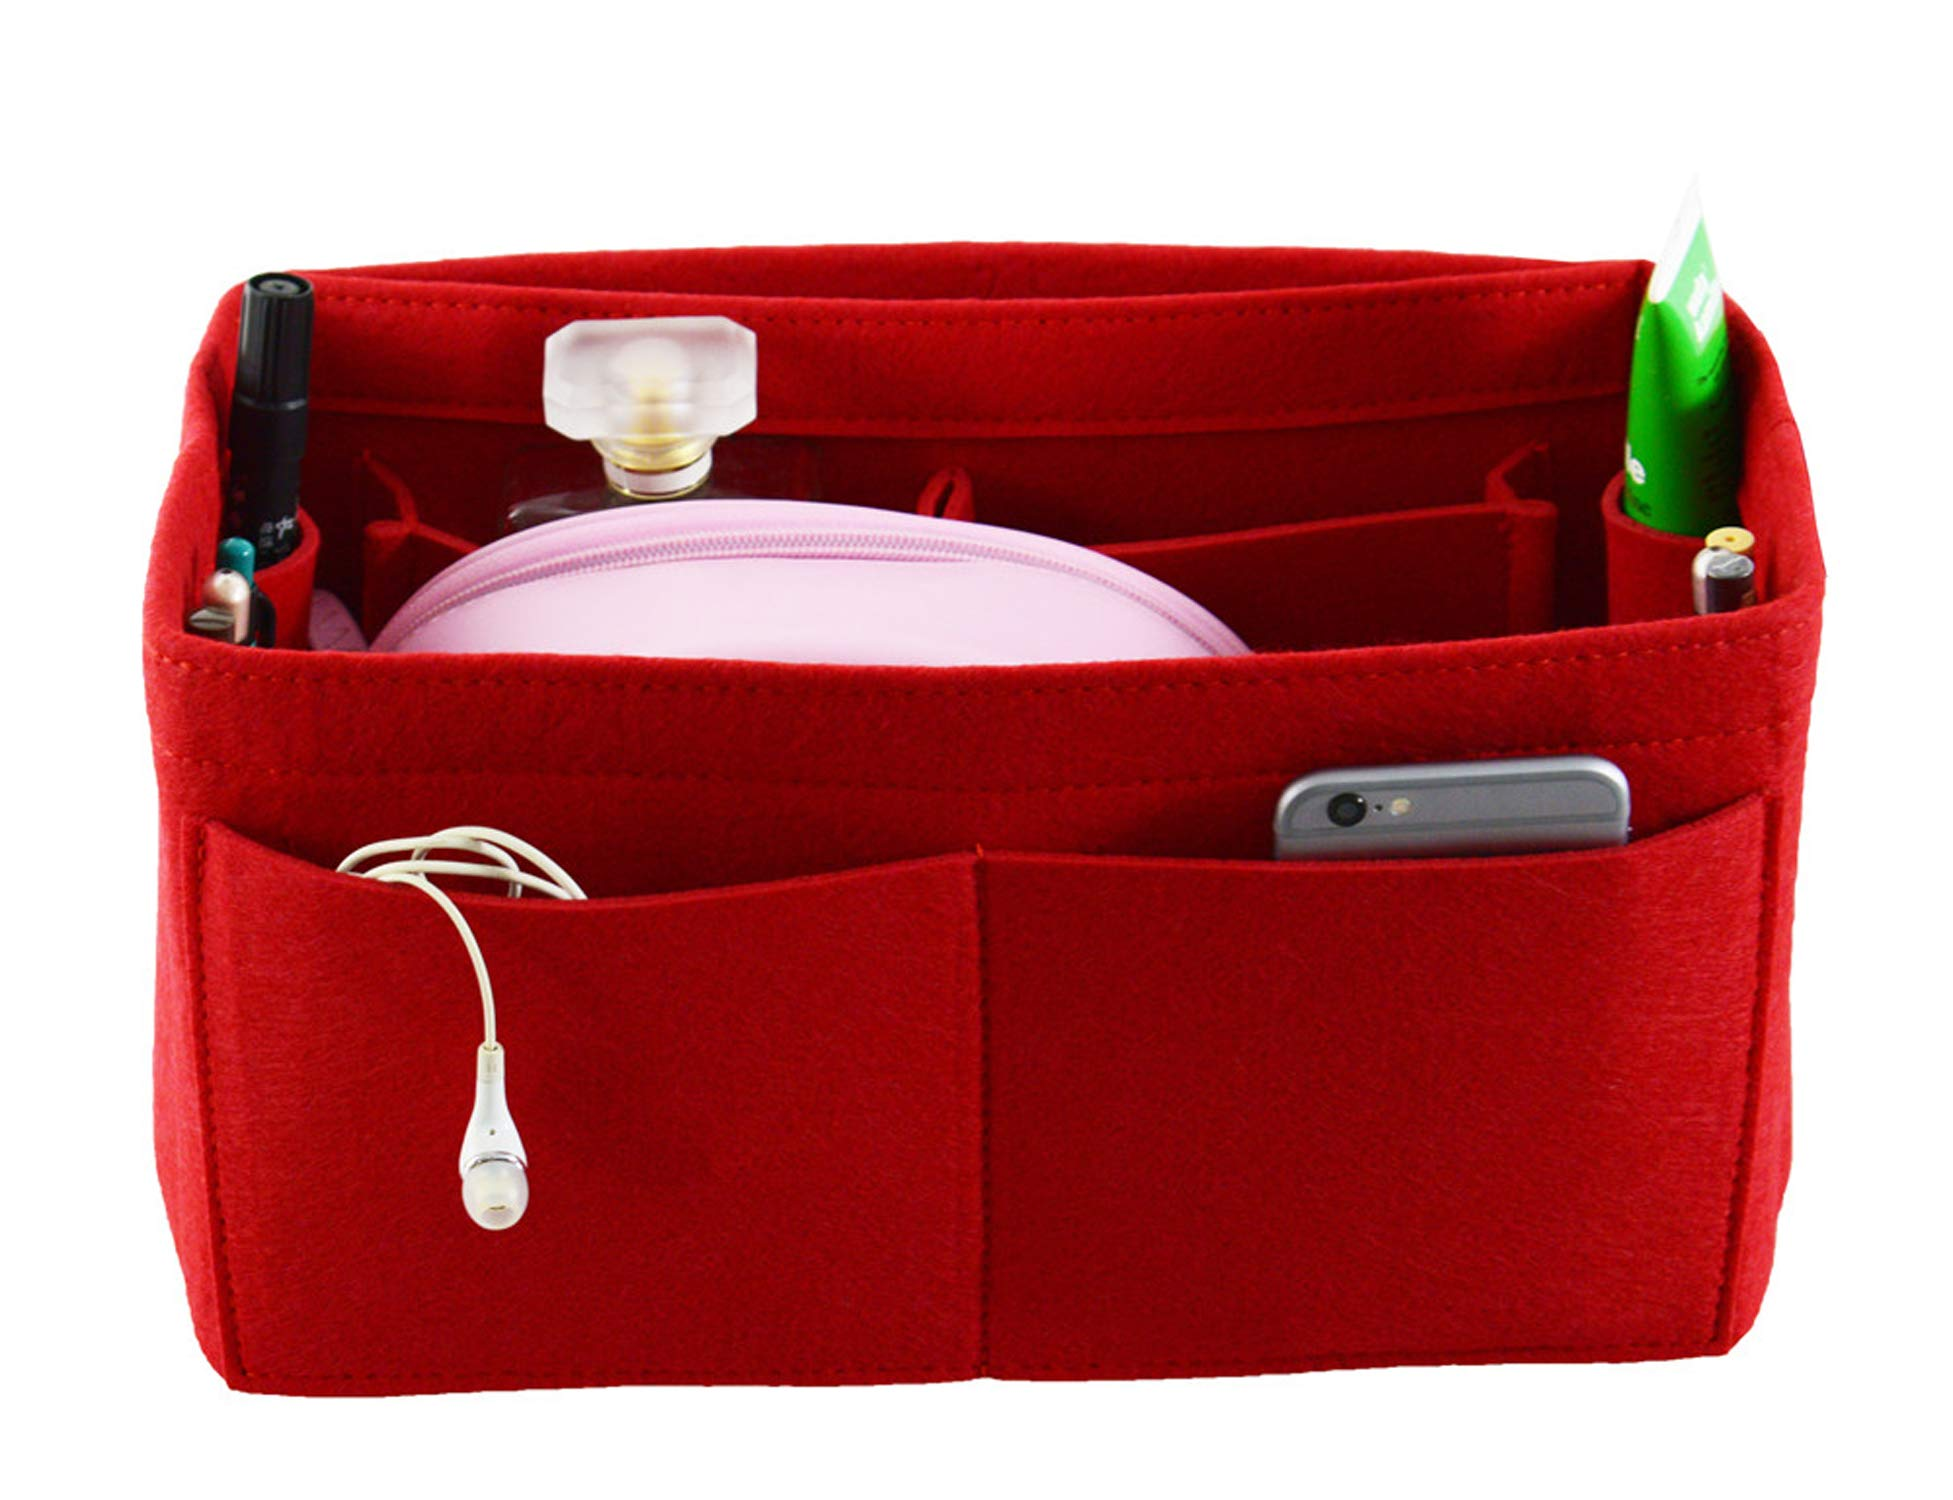 Large Felt Purse Organizer Bag, Fits Neverfull MM and Speedy 30, Red